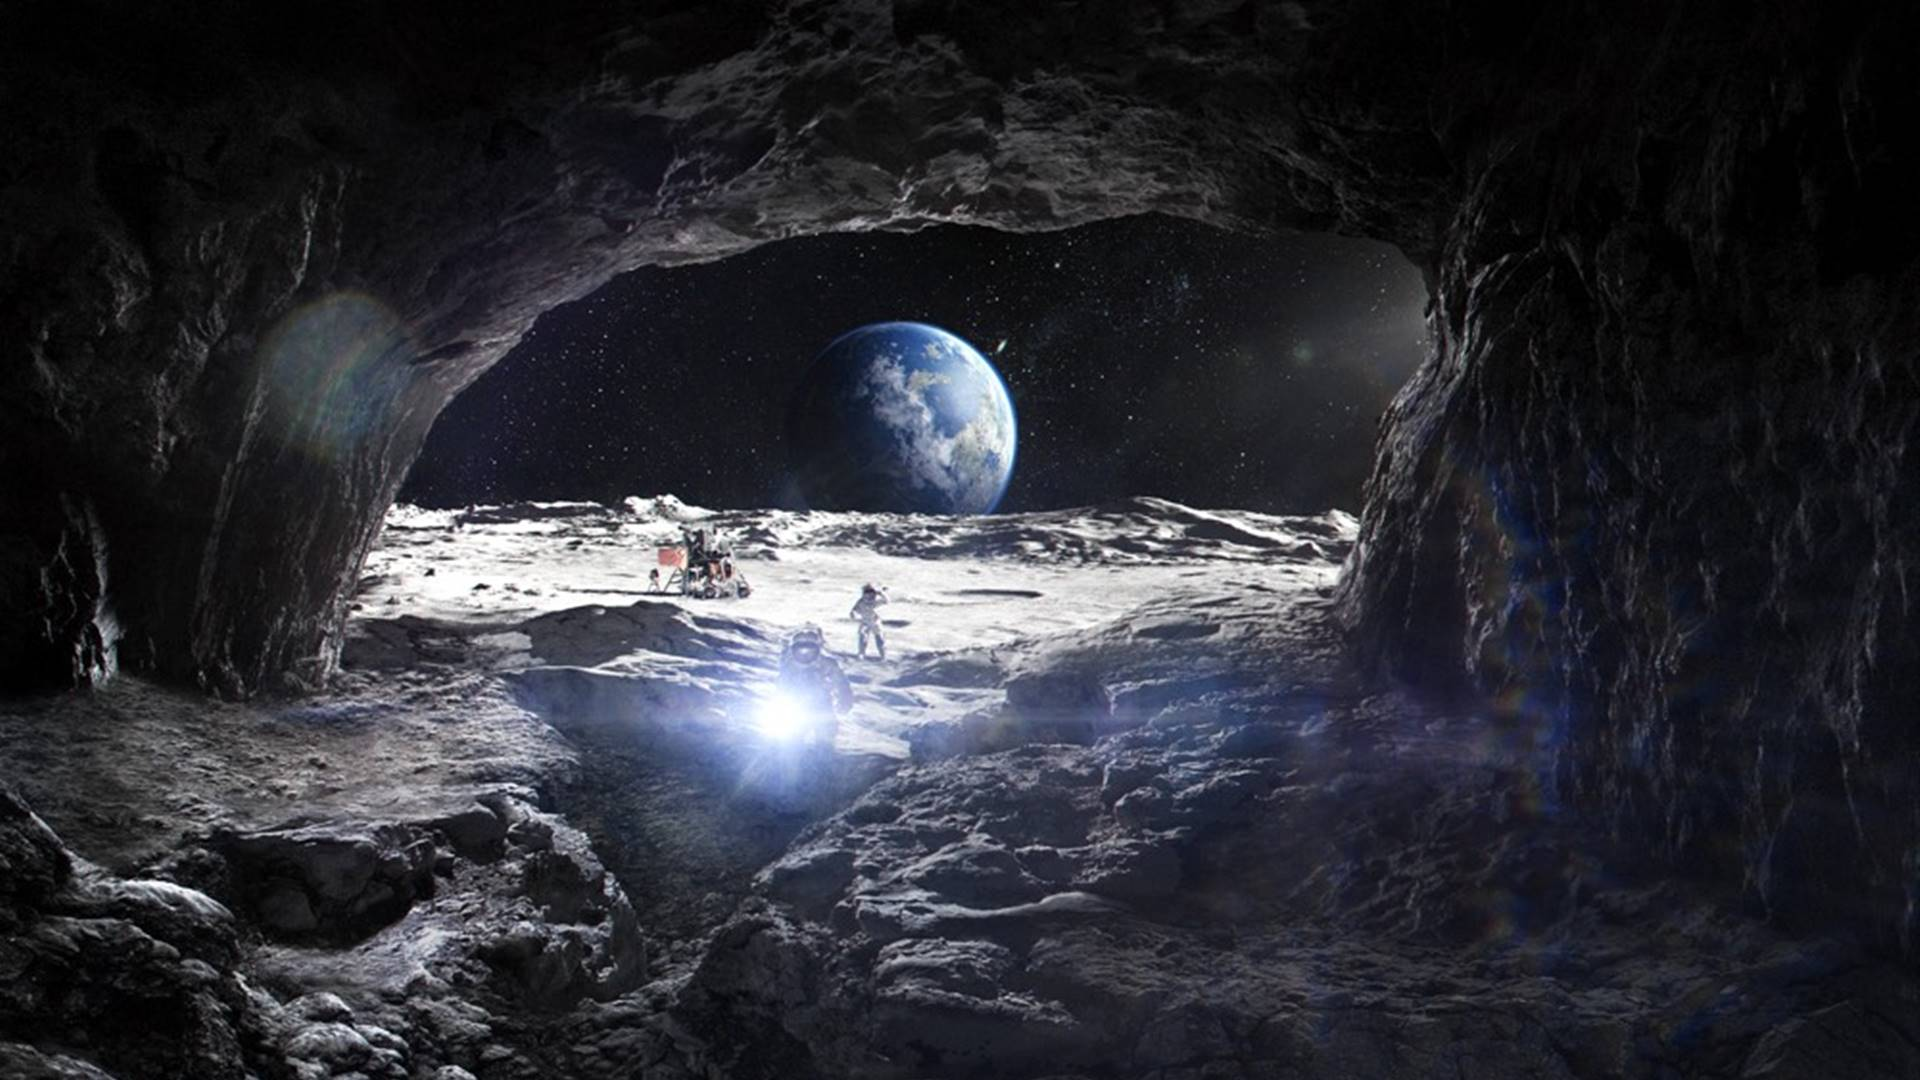 'Hamster ball' Robot which can explore moon: Everything you want to know